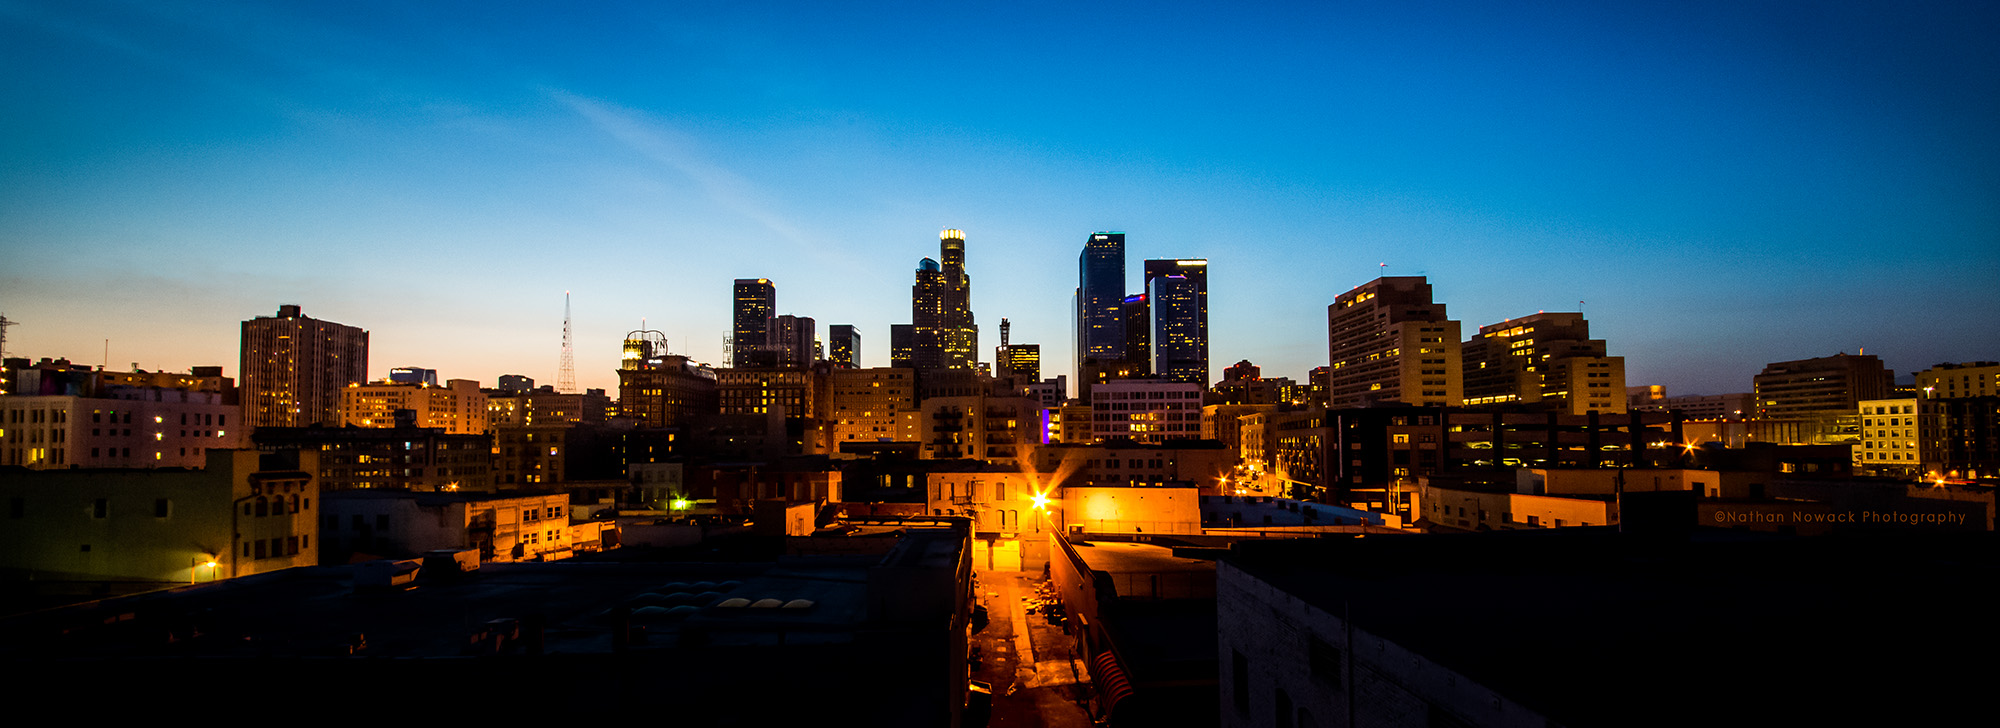 DTLA-LosAngeles-night-skyline-panoramic